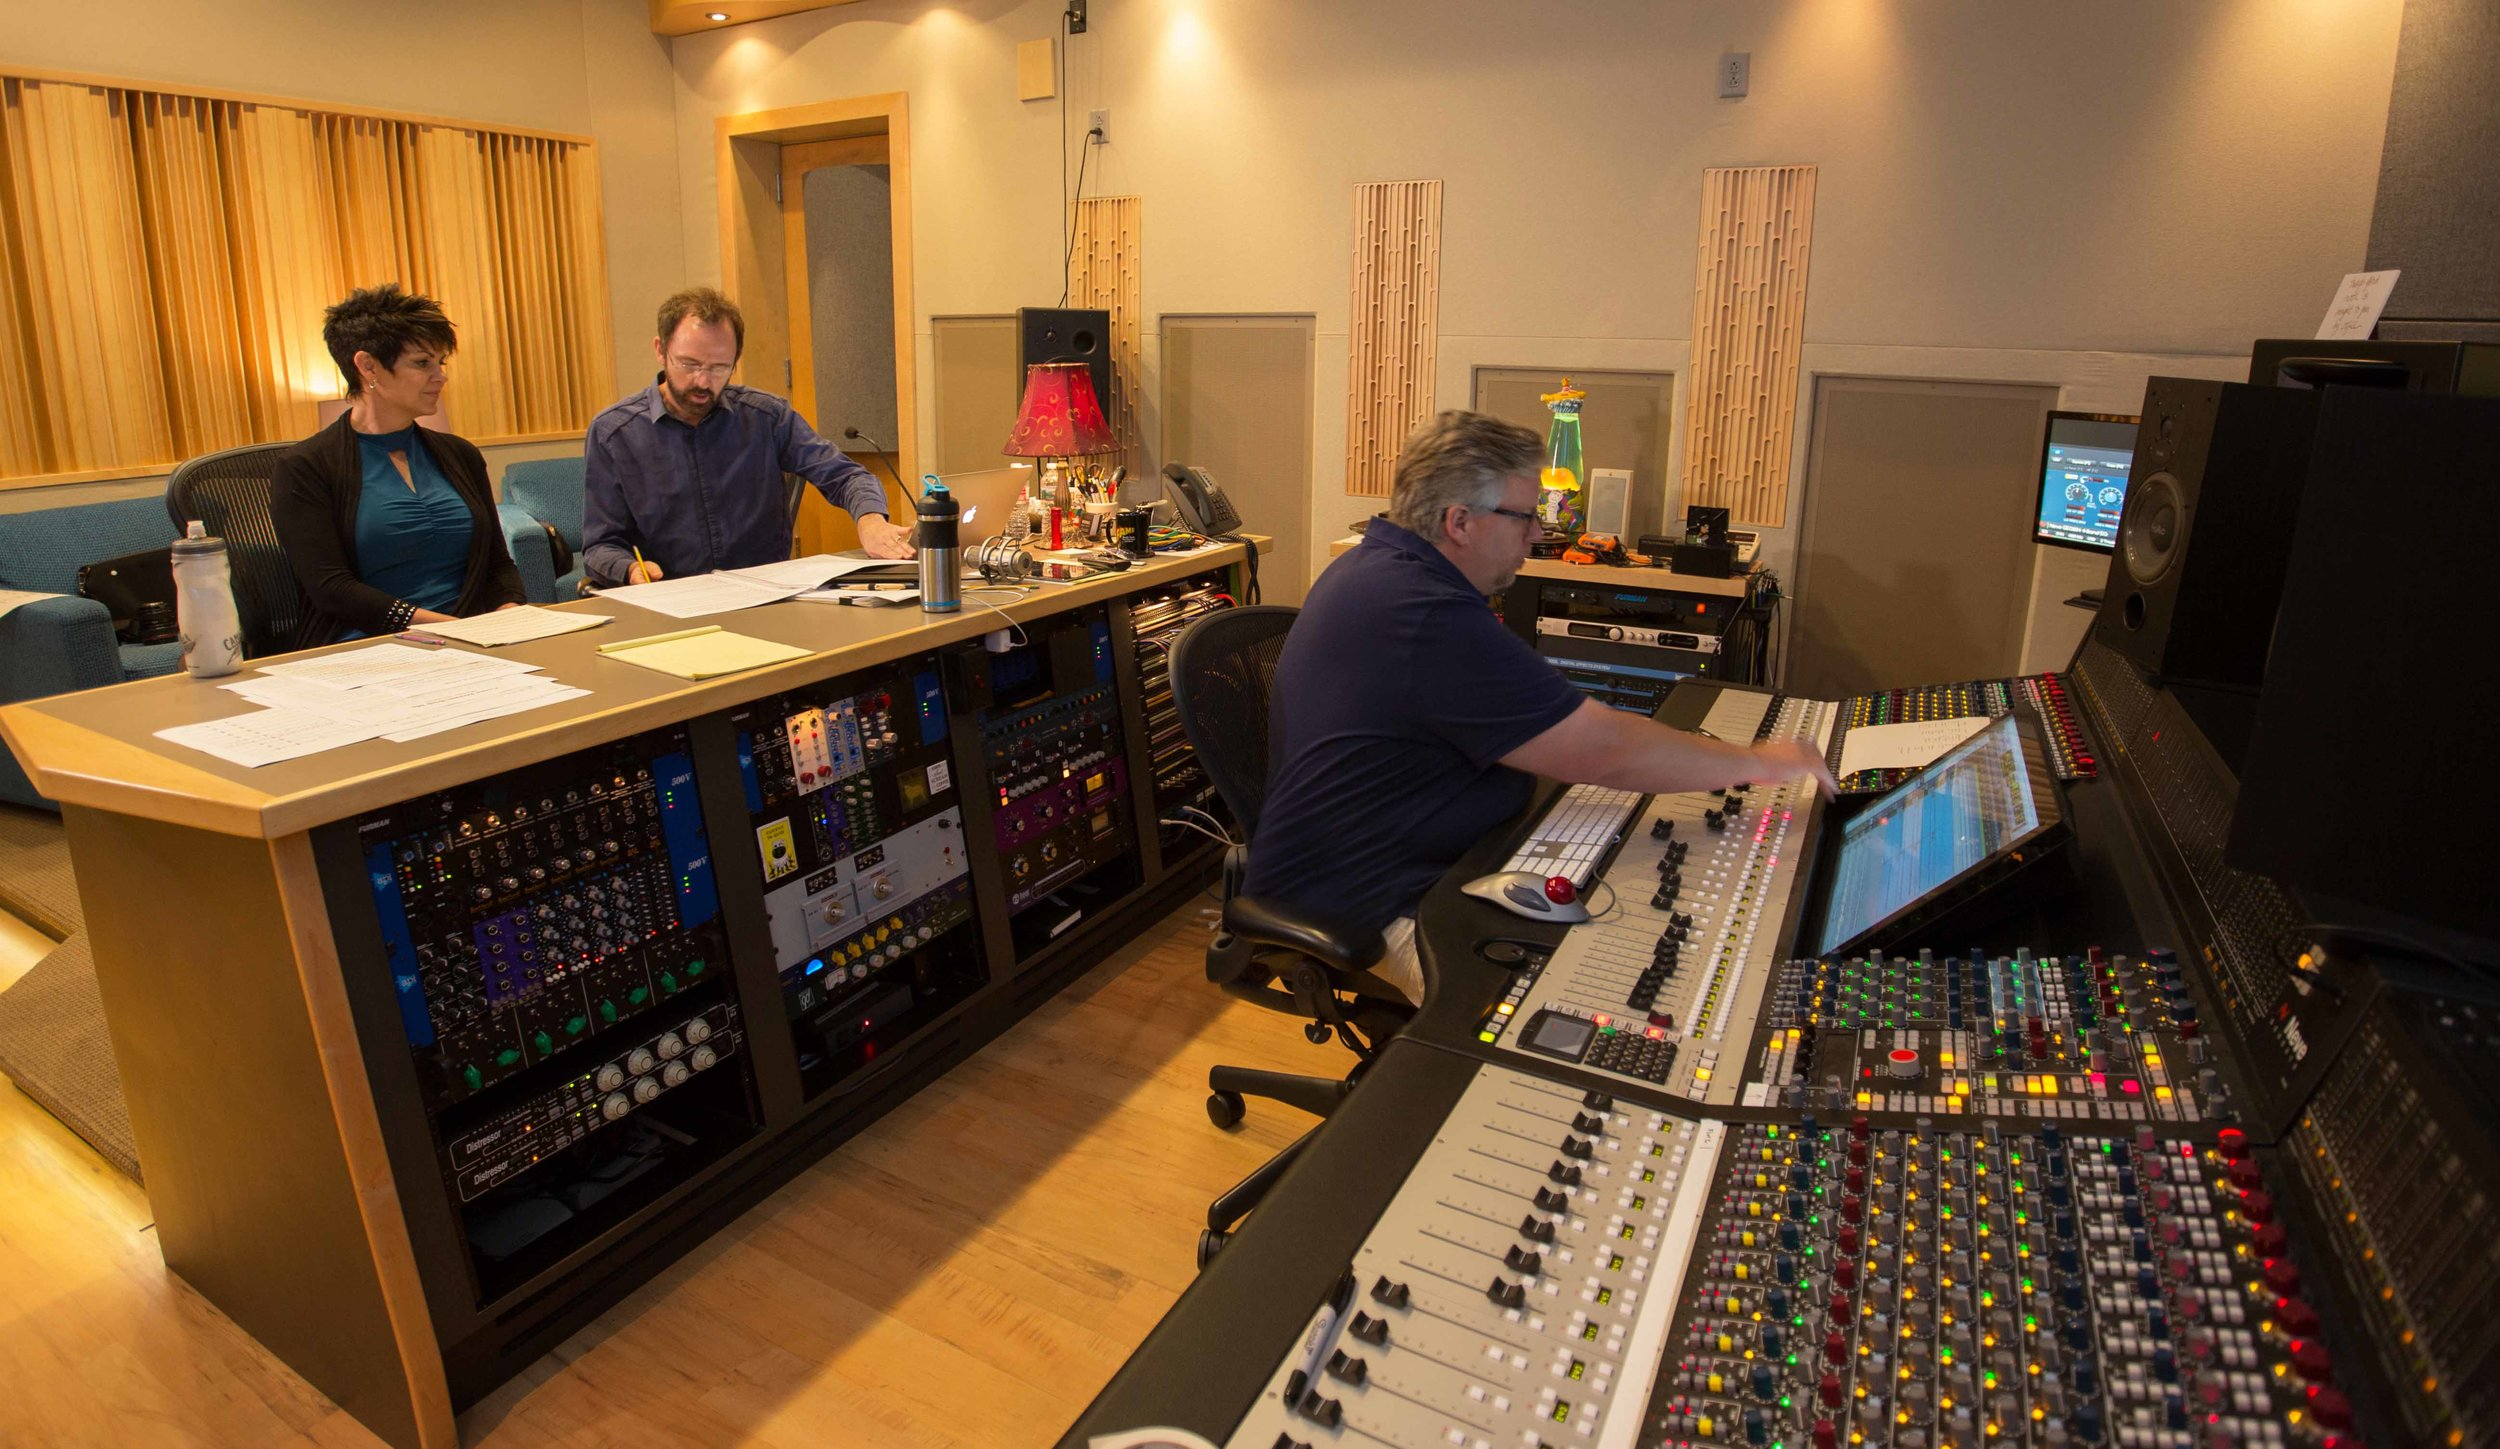 Jeannine Goeckeritz – Come Dream With Me Album – Recording Session – HUGEsound Post Production - Chance Thomas – Michael Greene - Recording Booth.jpg